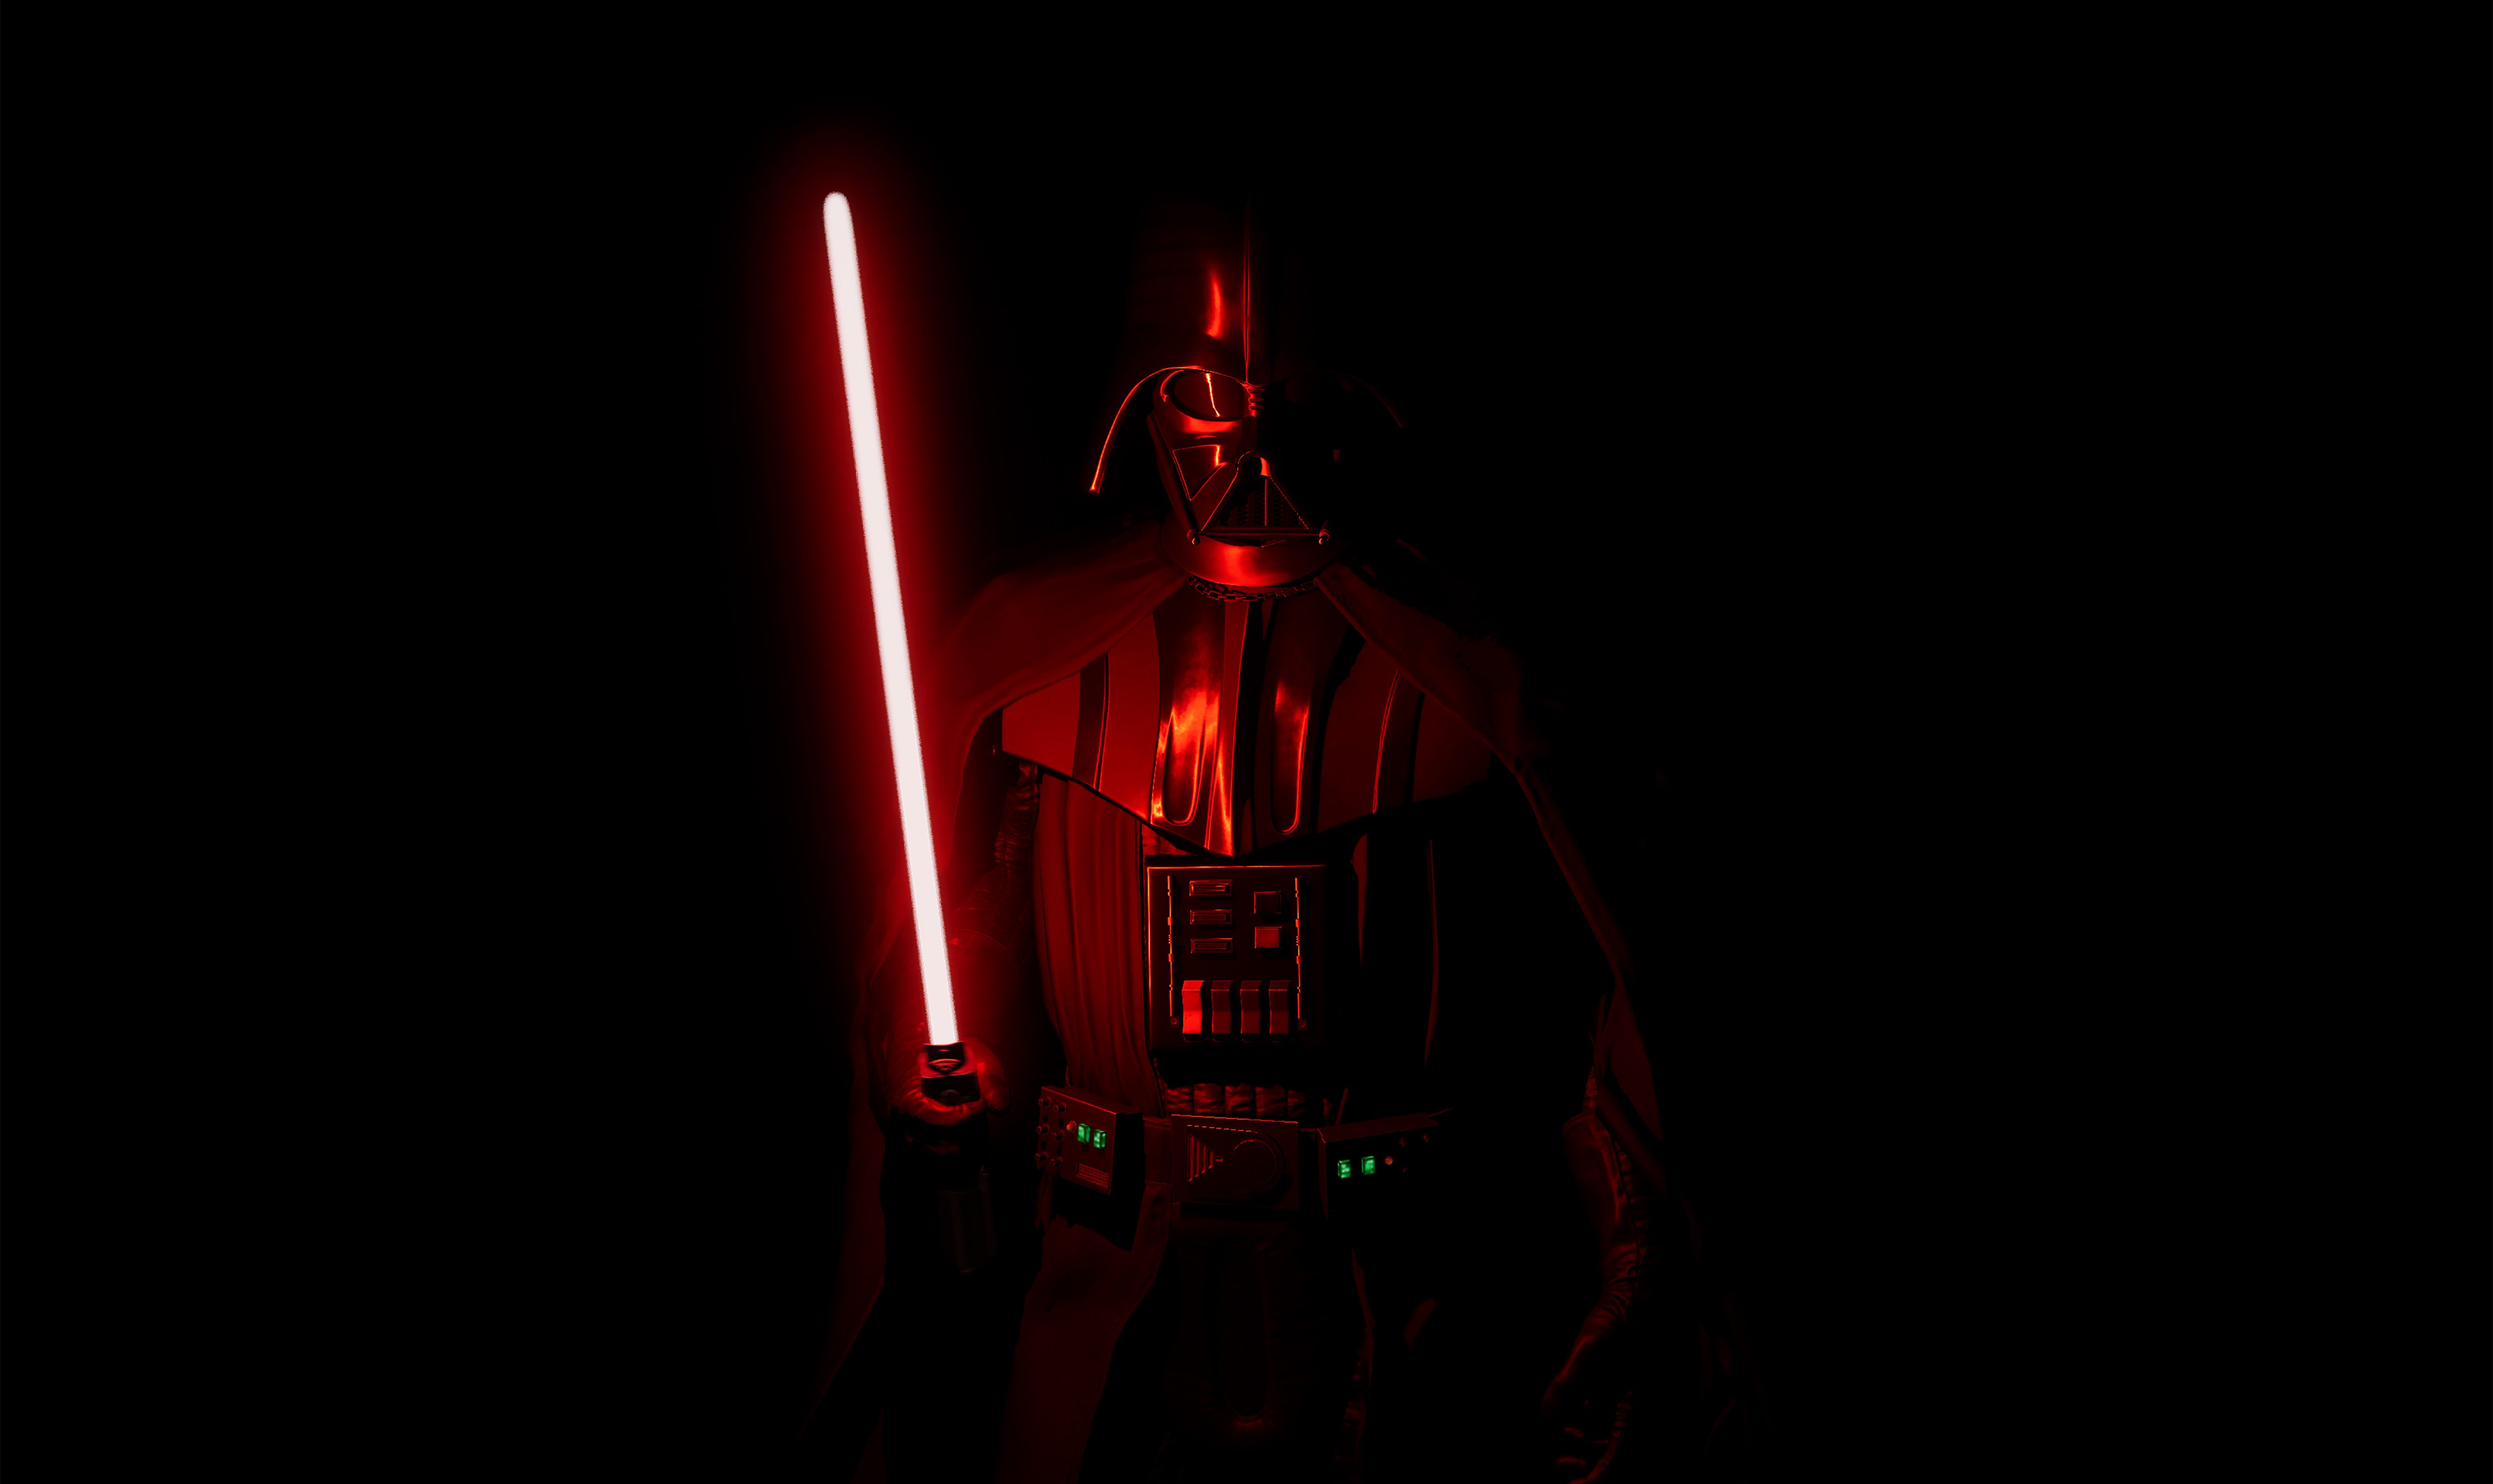 1280x2120 Darth Vader 5k 2019 IPhone 6+ HD 4k Wallpapers